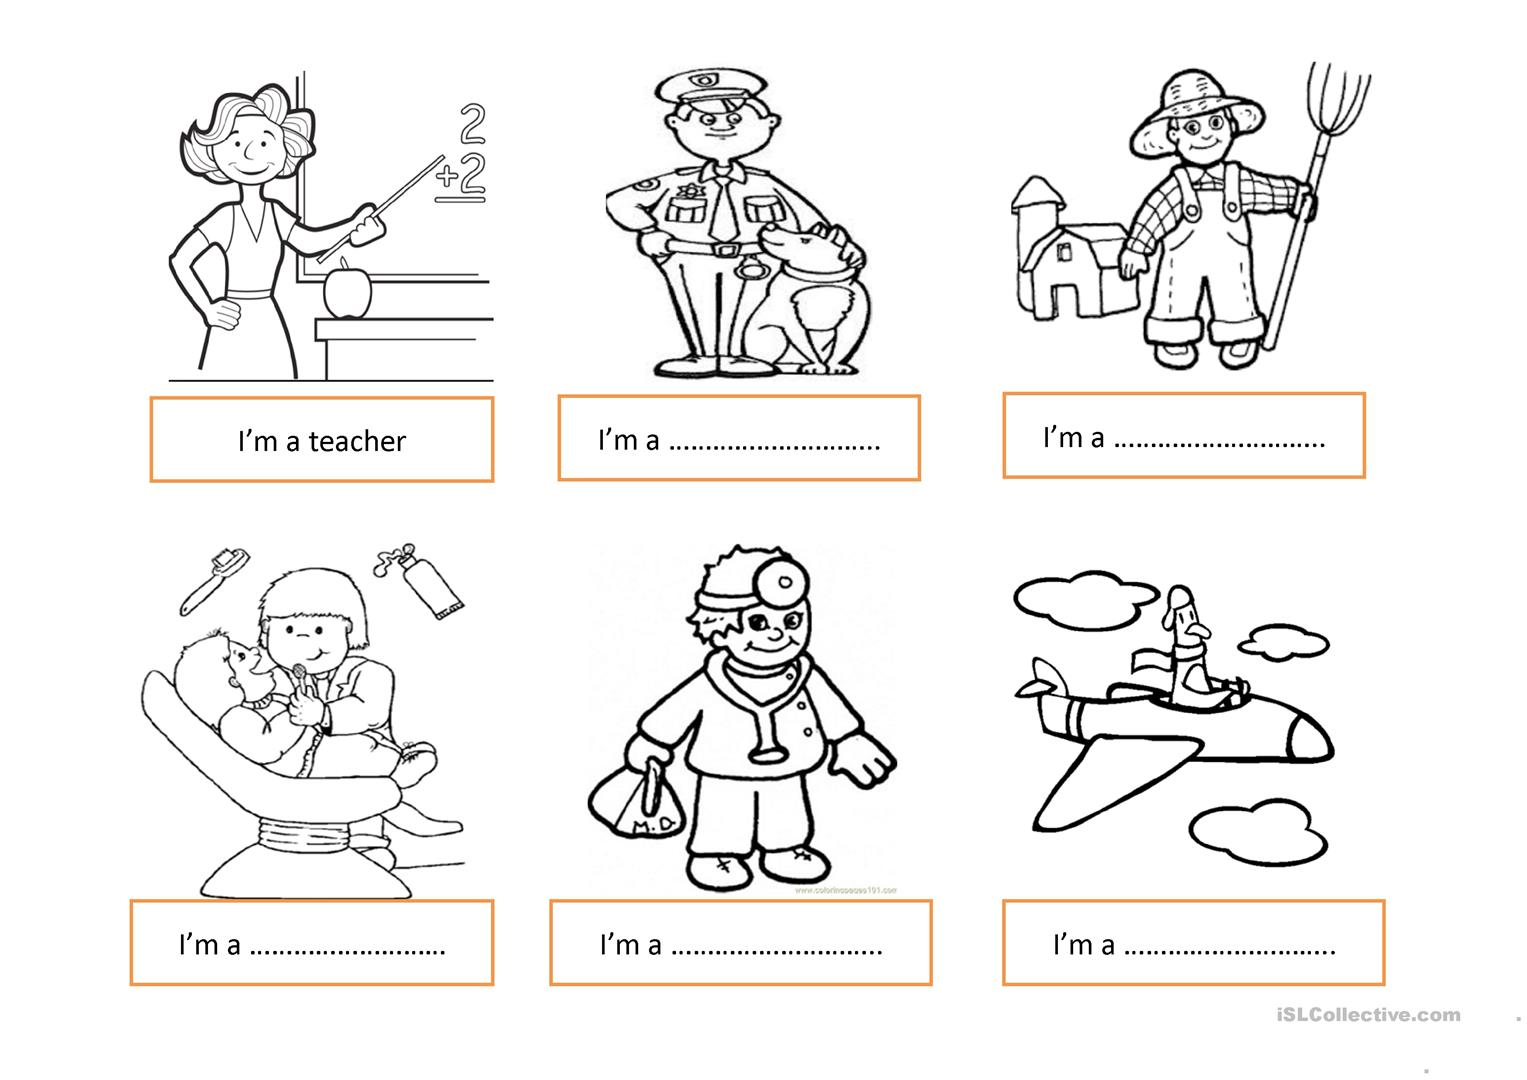 Printables Of Jobs Worksheet For Preschool